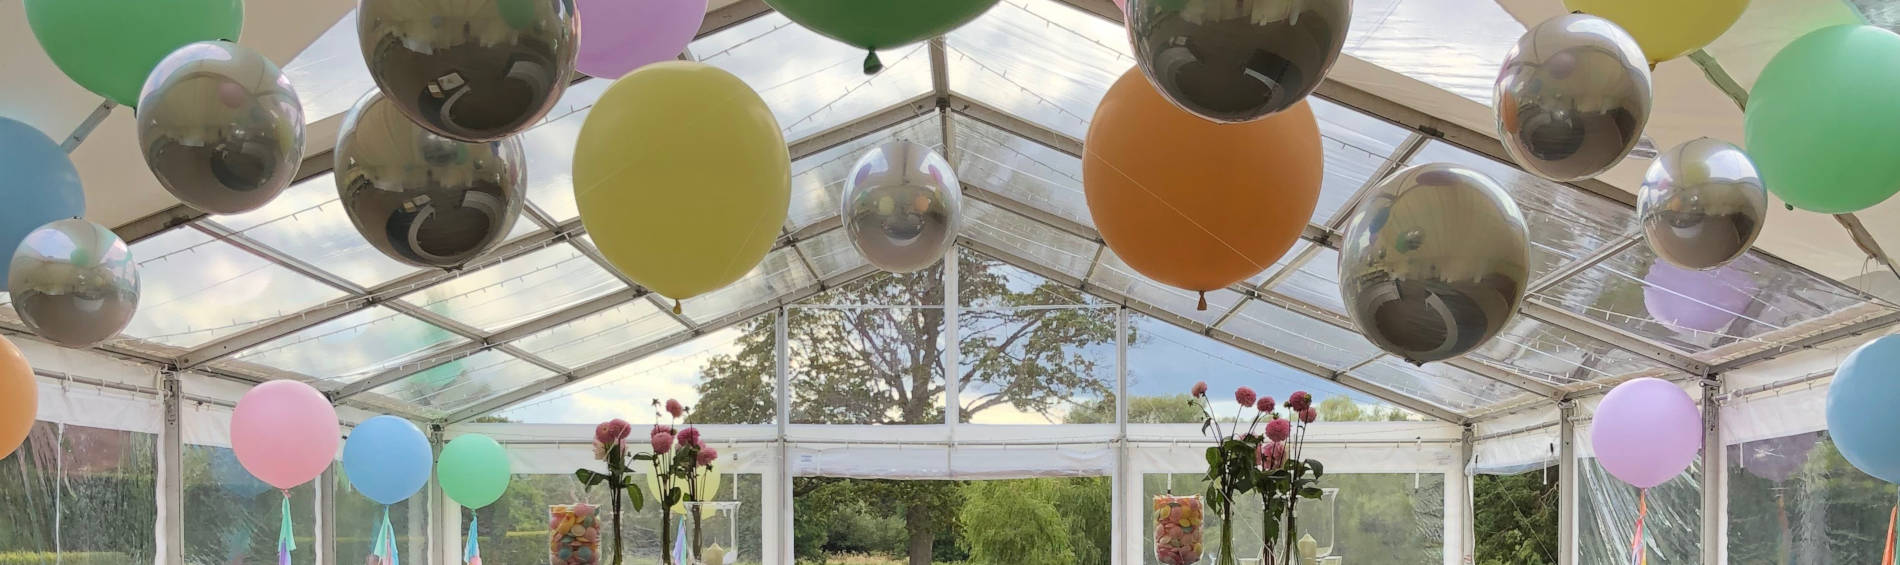 Create your dream party marquee